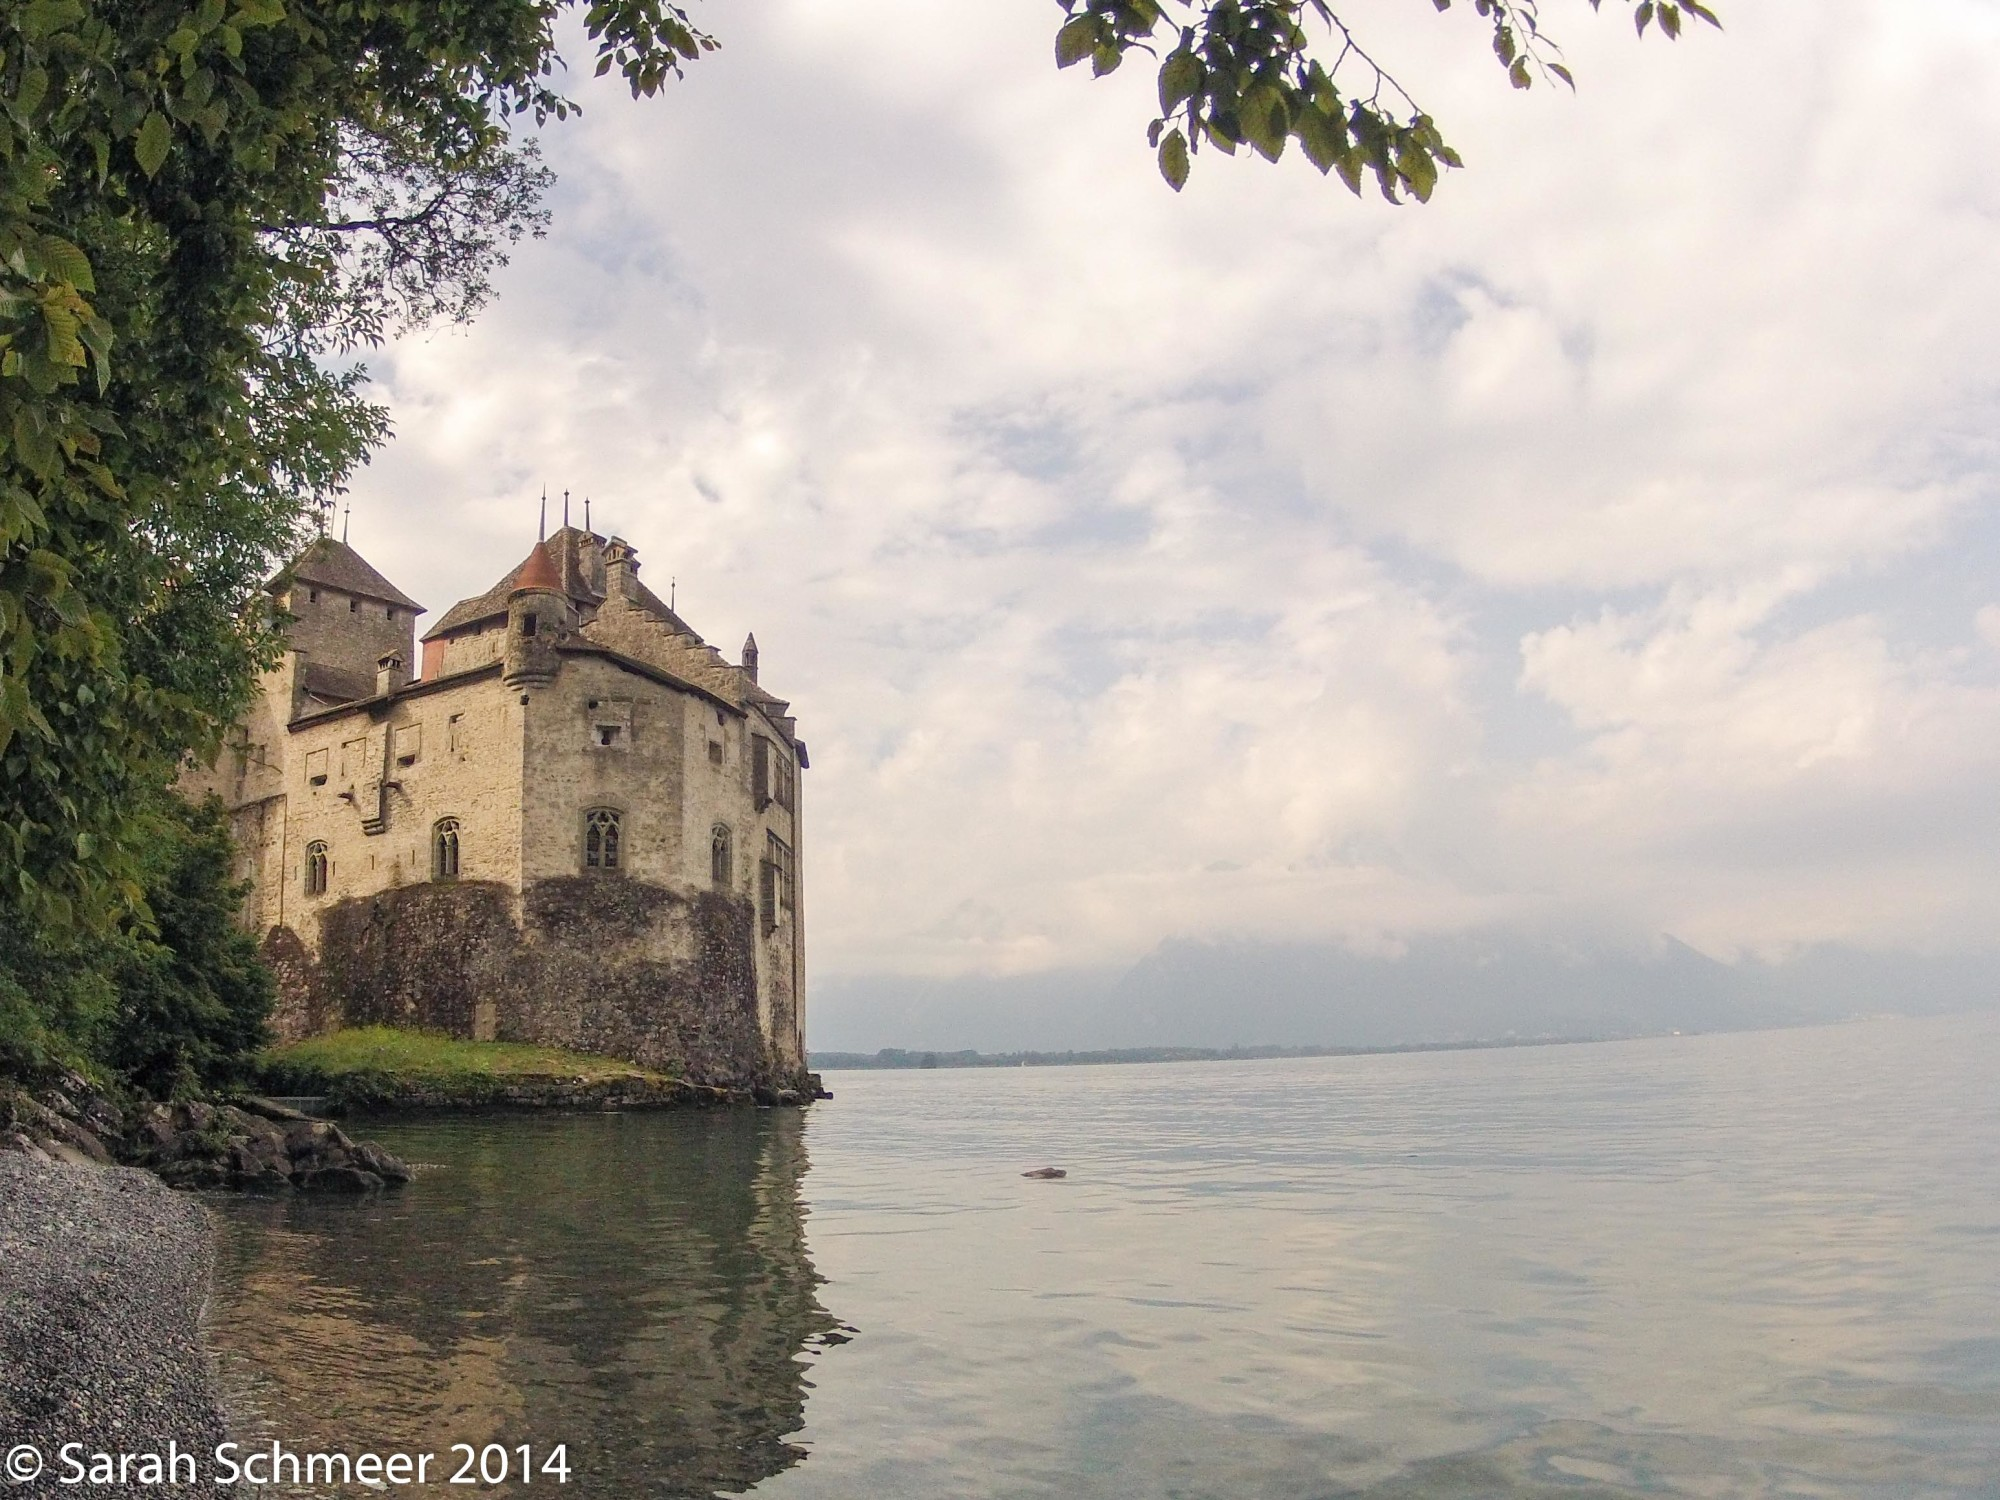 Chillon Castle looming over Lac Leman